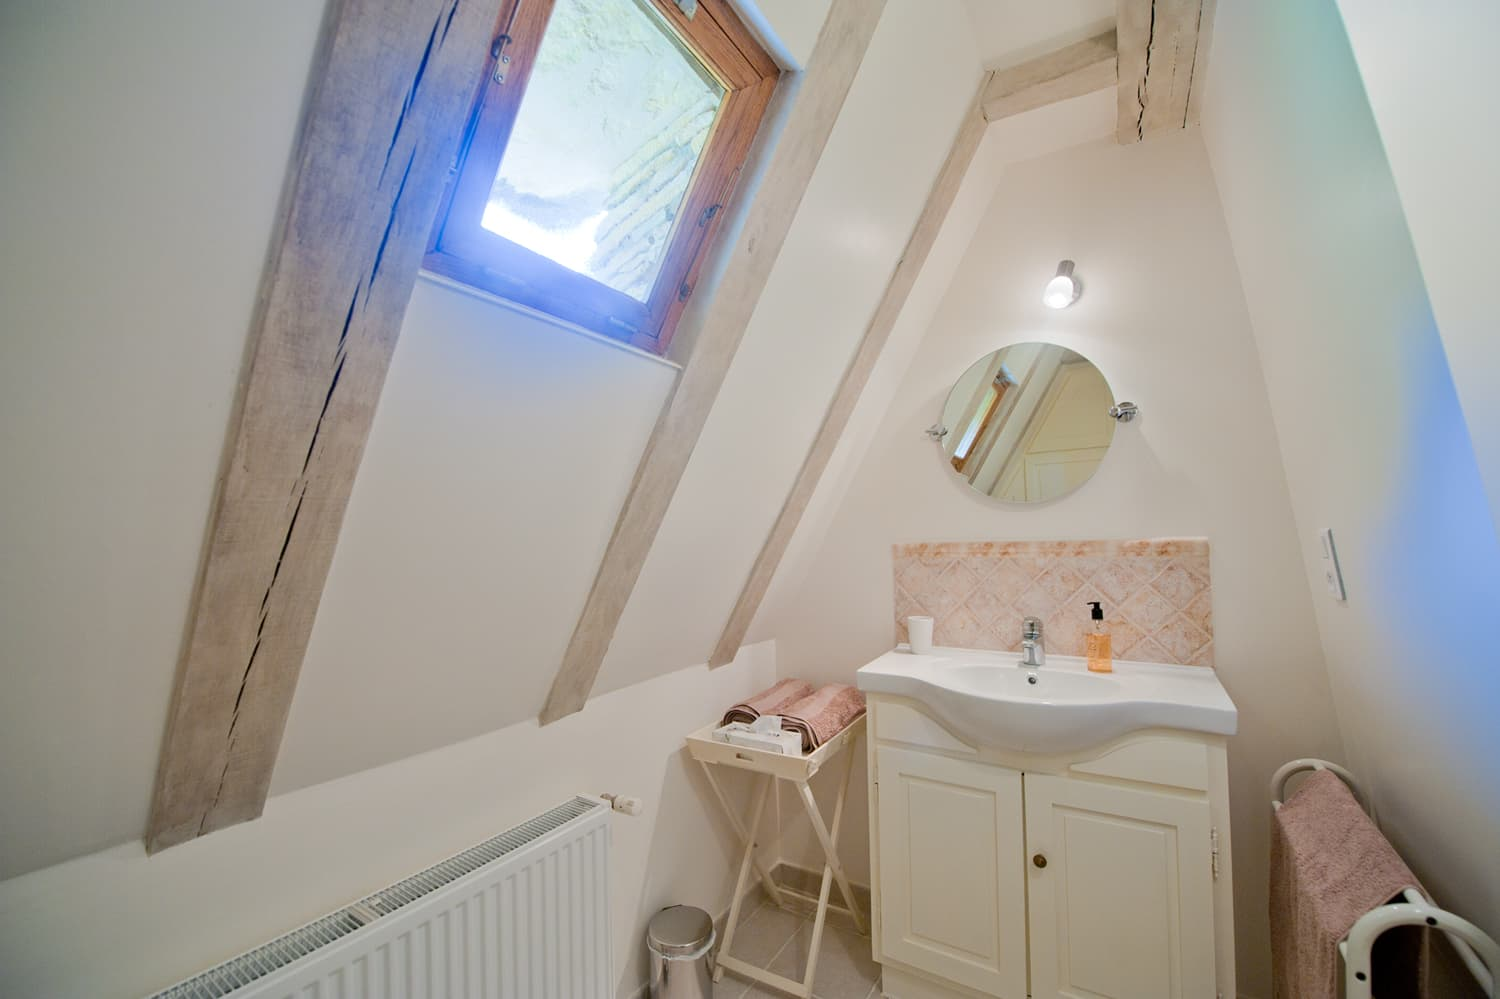 Bathroom in Dordogne rental cottage